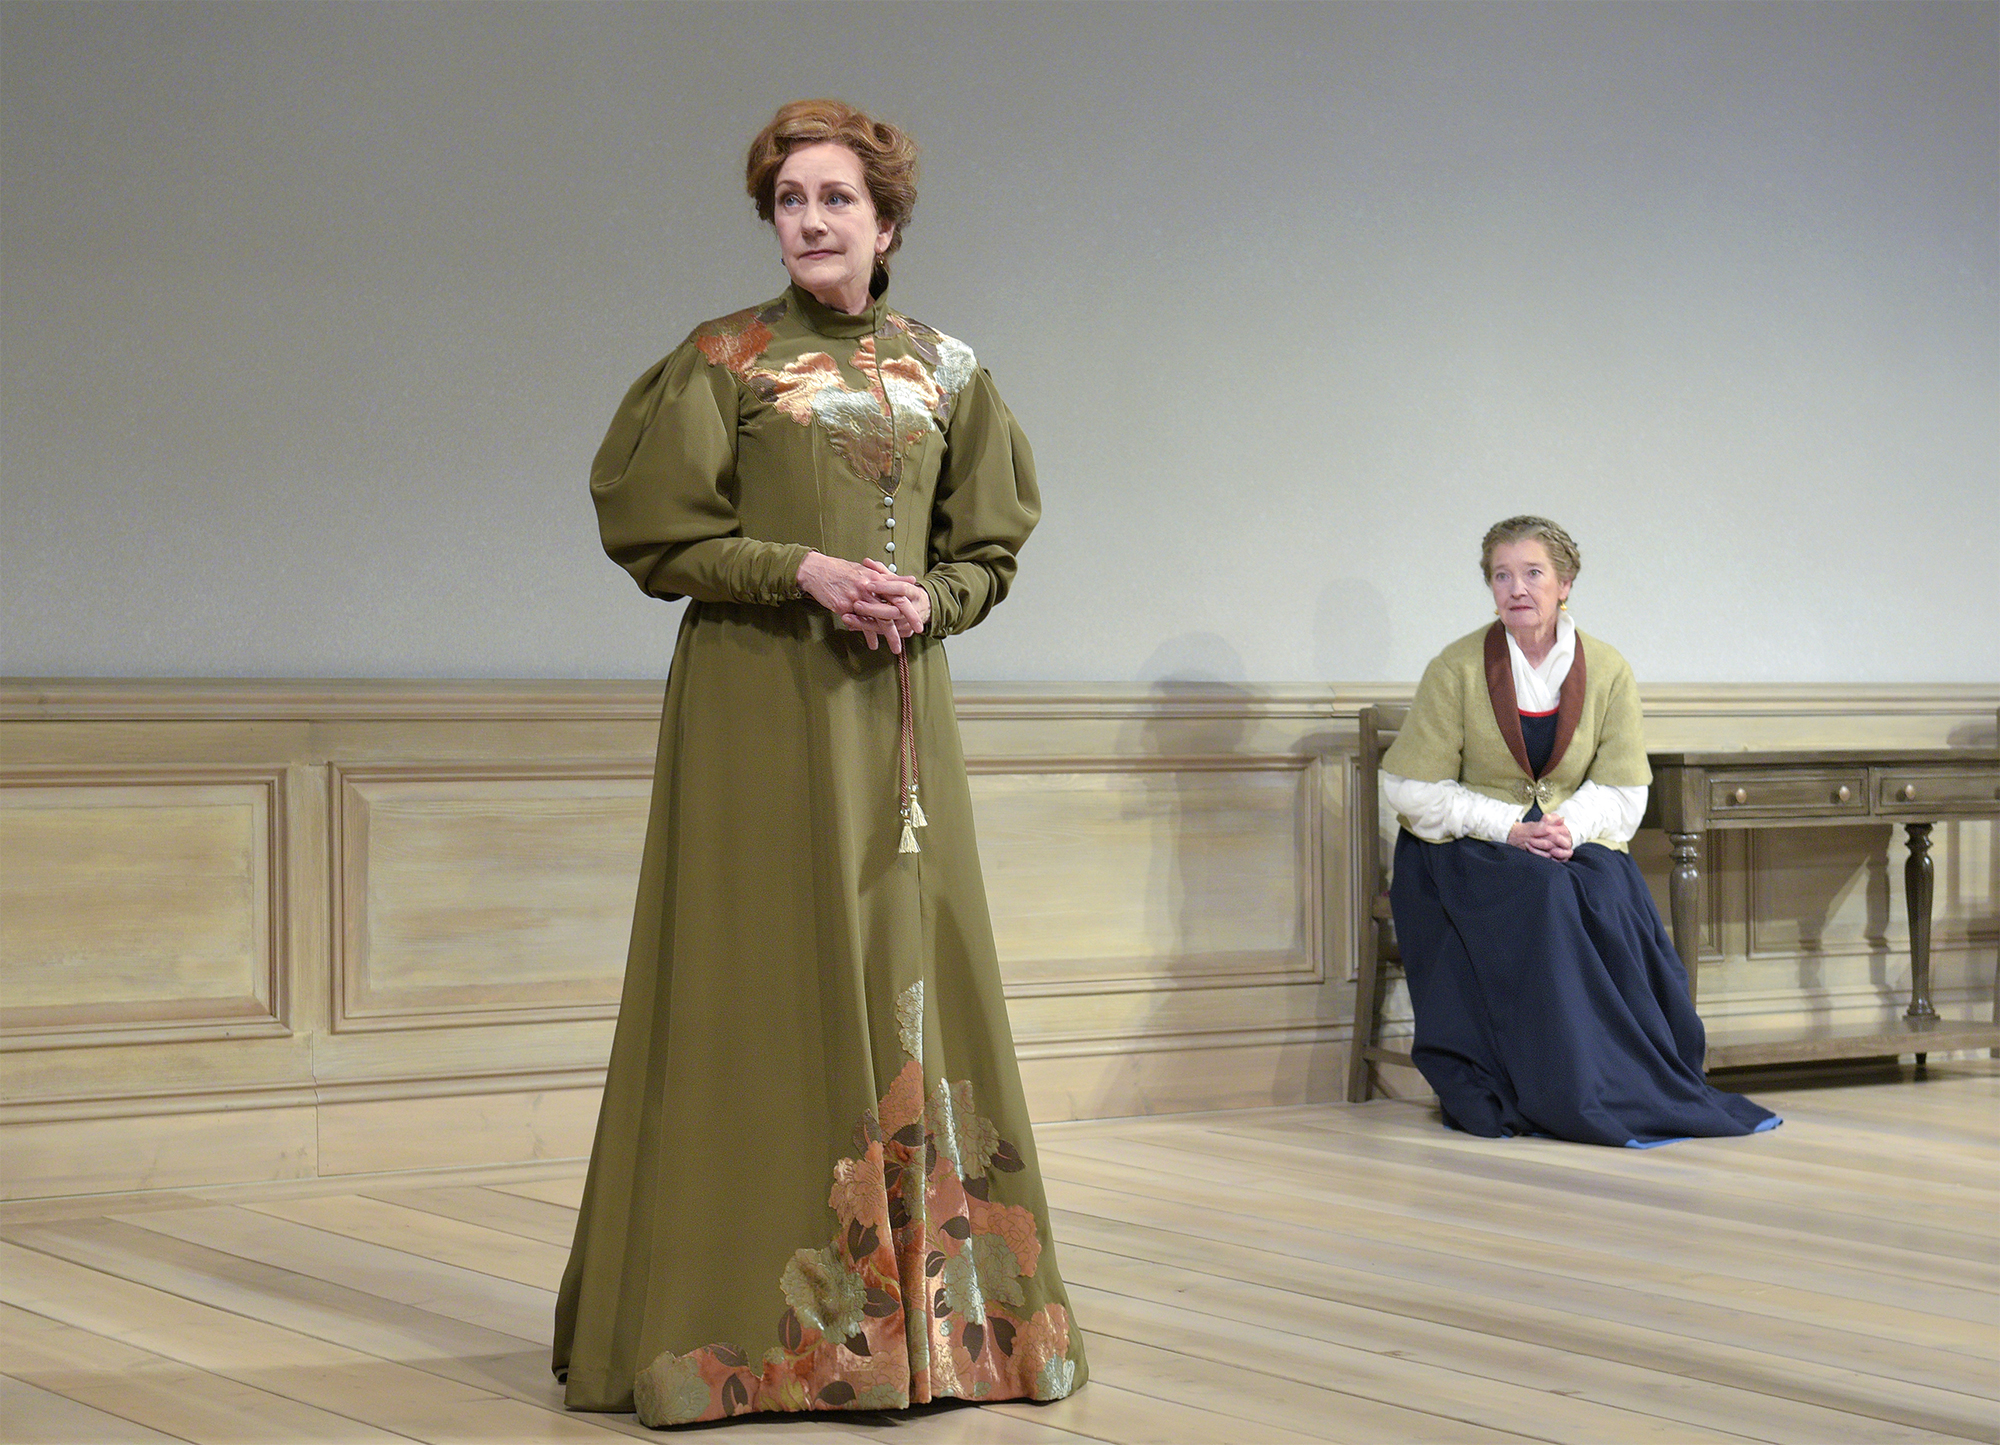 Mary Beth Fisher (Nora) and Nancy E. Carroll (Anne Marie) in Berkeley Rep's production of  A Doll's House, Part 2  directed by Les Waters. Photo: Kevin Berne